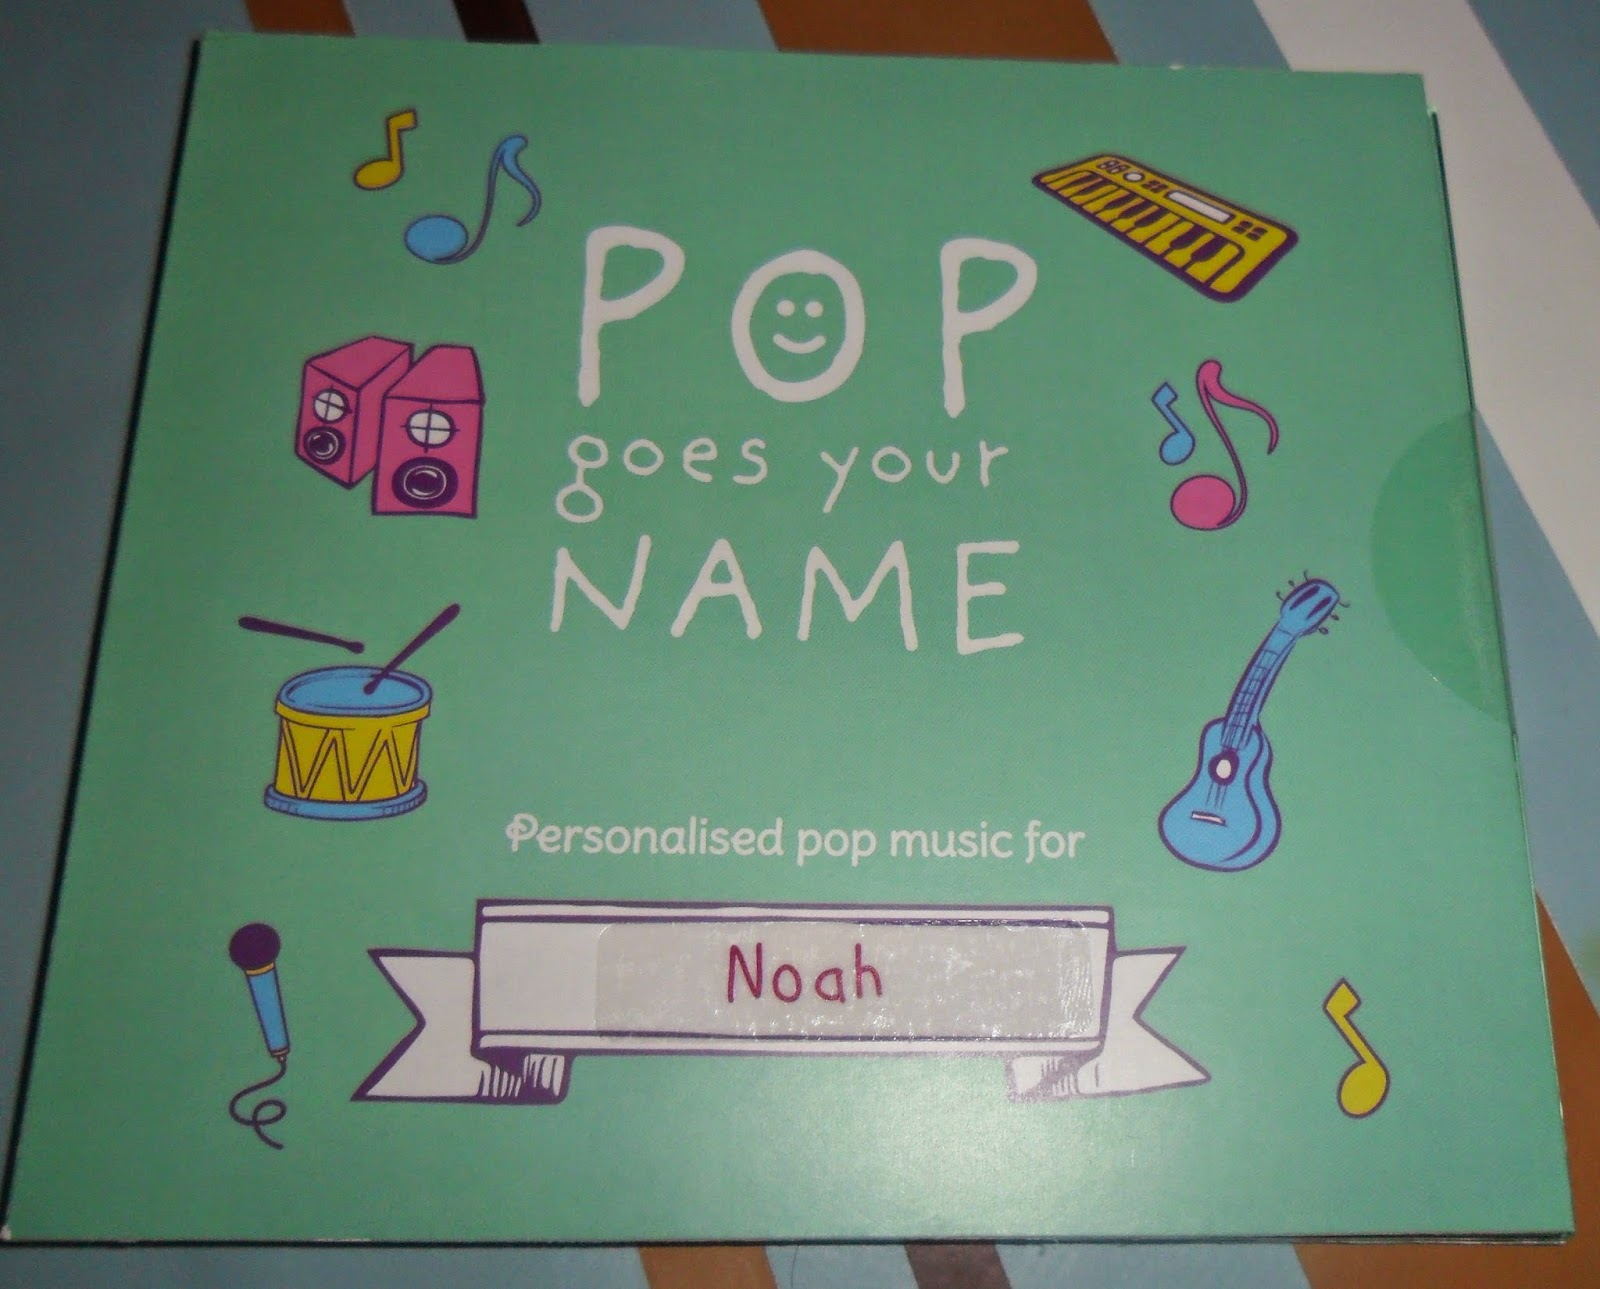 pop goes your name personalised cd UK